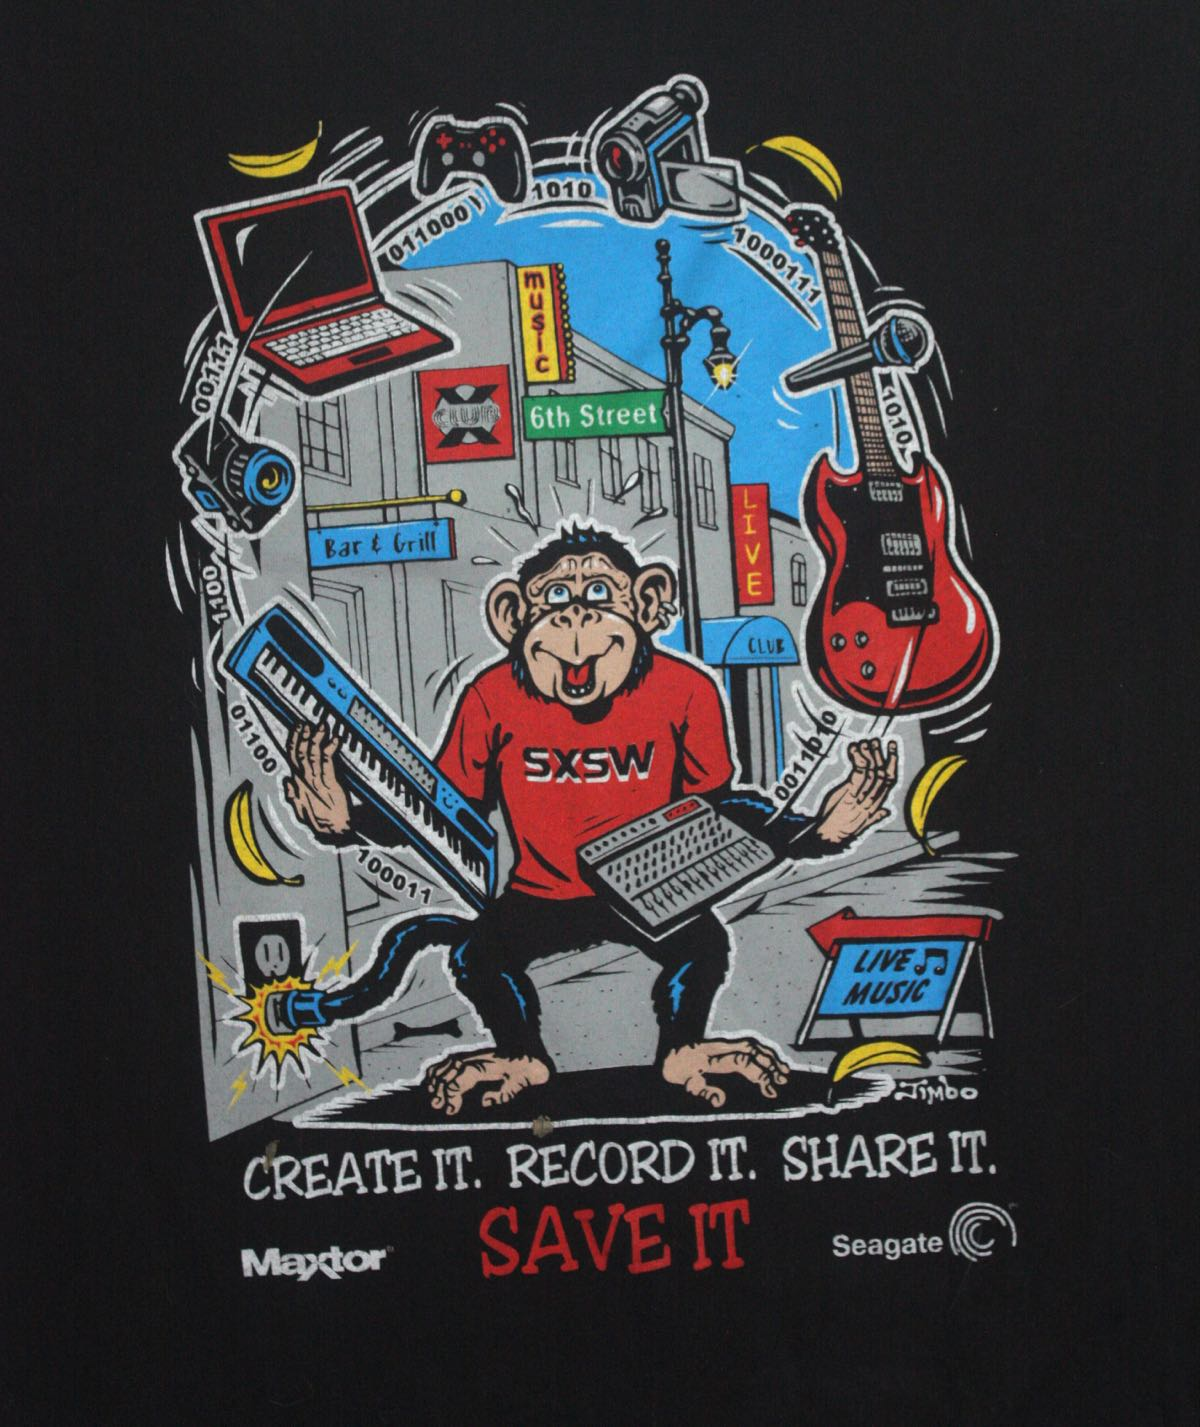 Seagate SXSW Tee by Jimbo Phillips